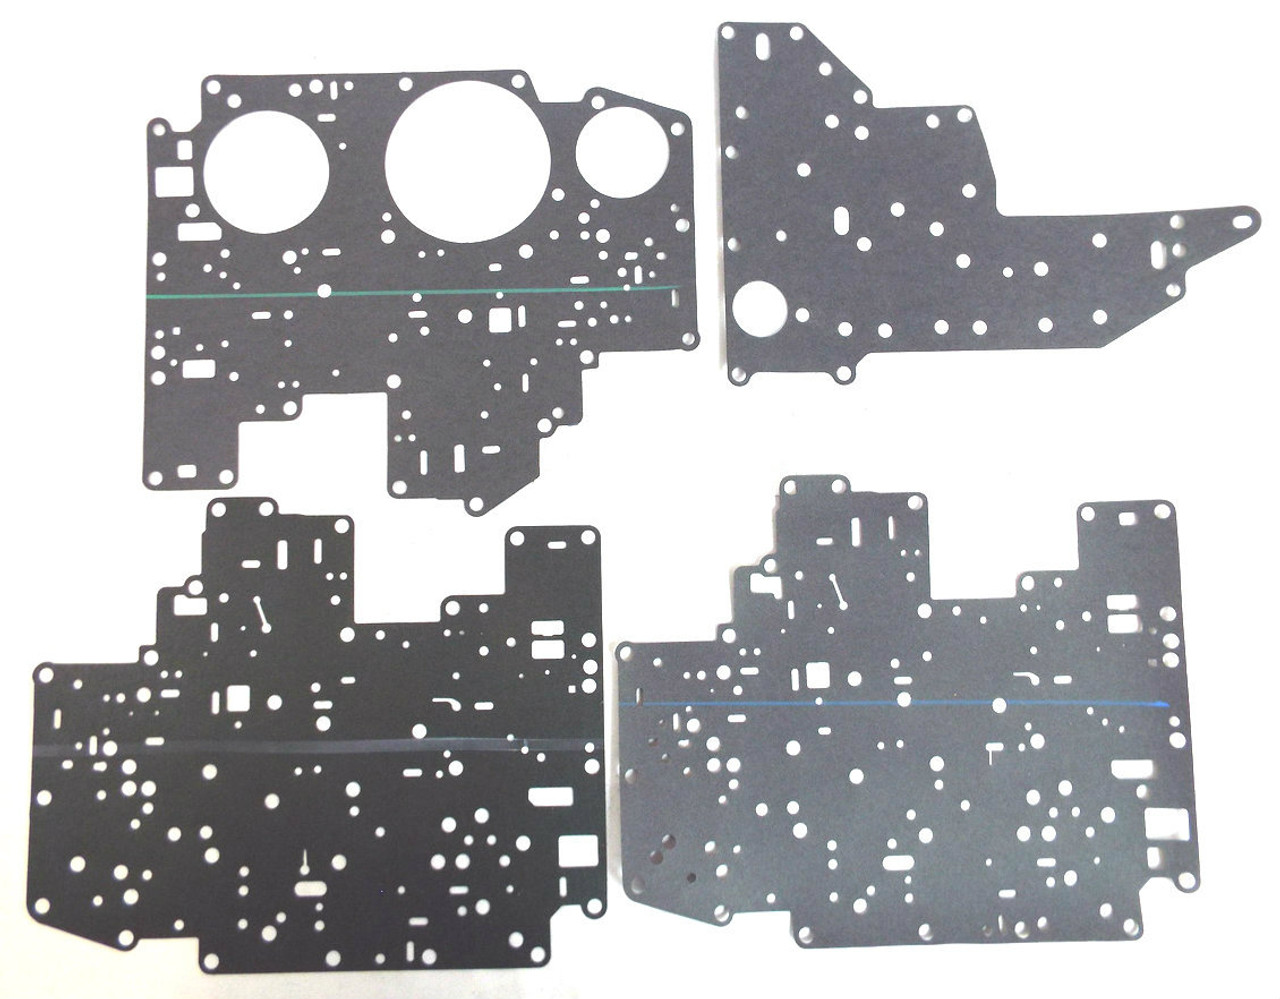 Ford 4R70W 4R75W 4R75E Transmission Valve Body Cover Plate Gasket Set ALL YEARS